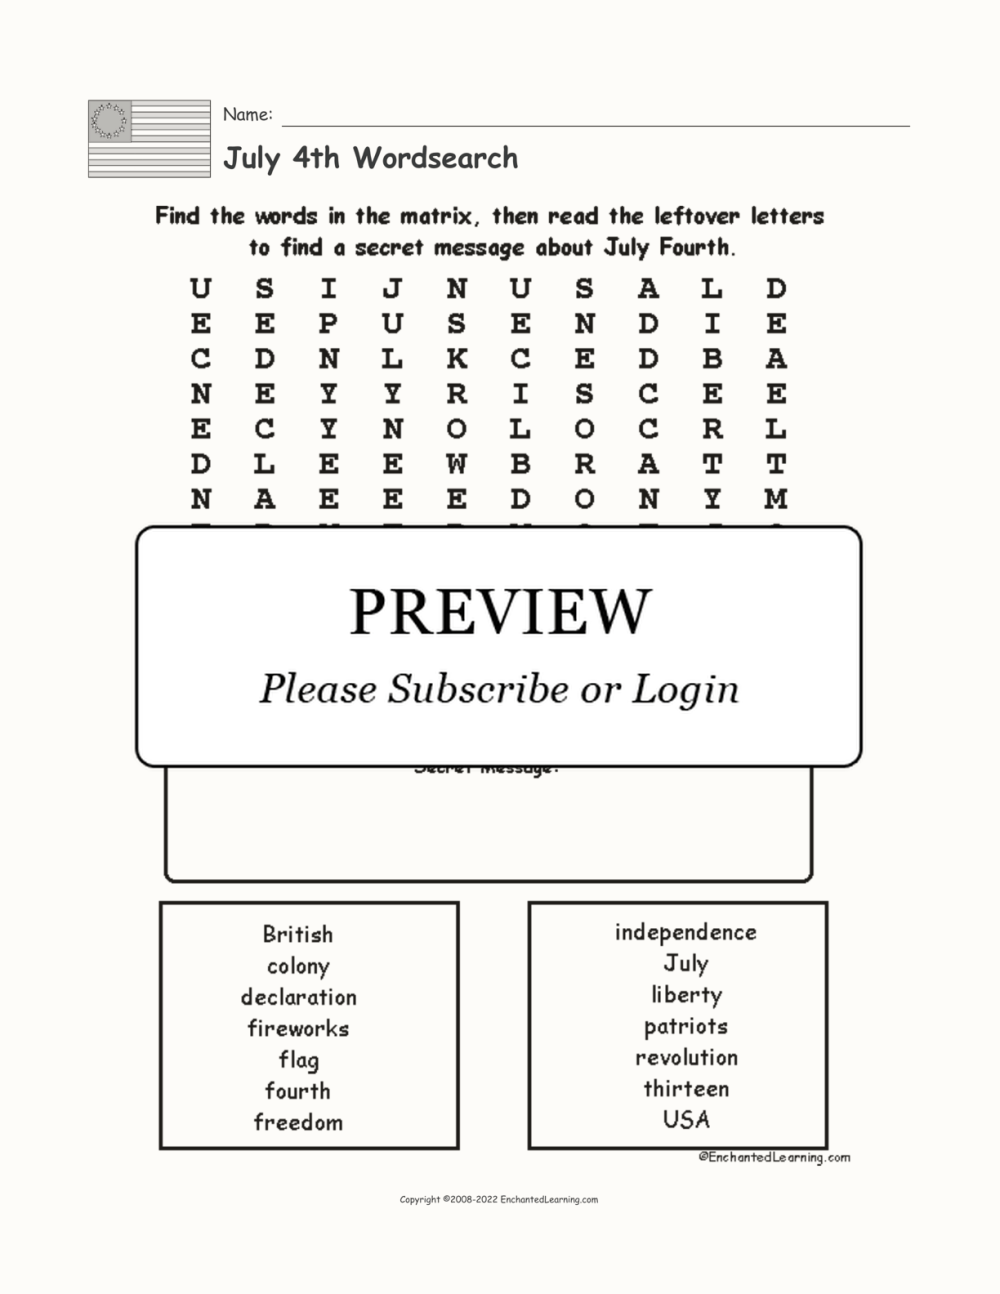 medium resolution of July 4th Wordsearch - Enchanted Learning